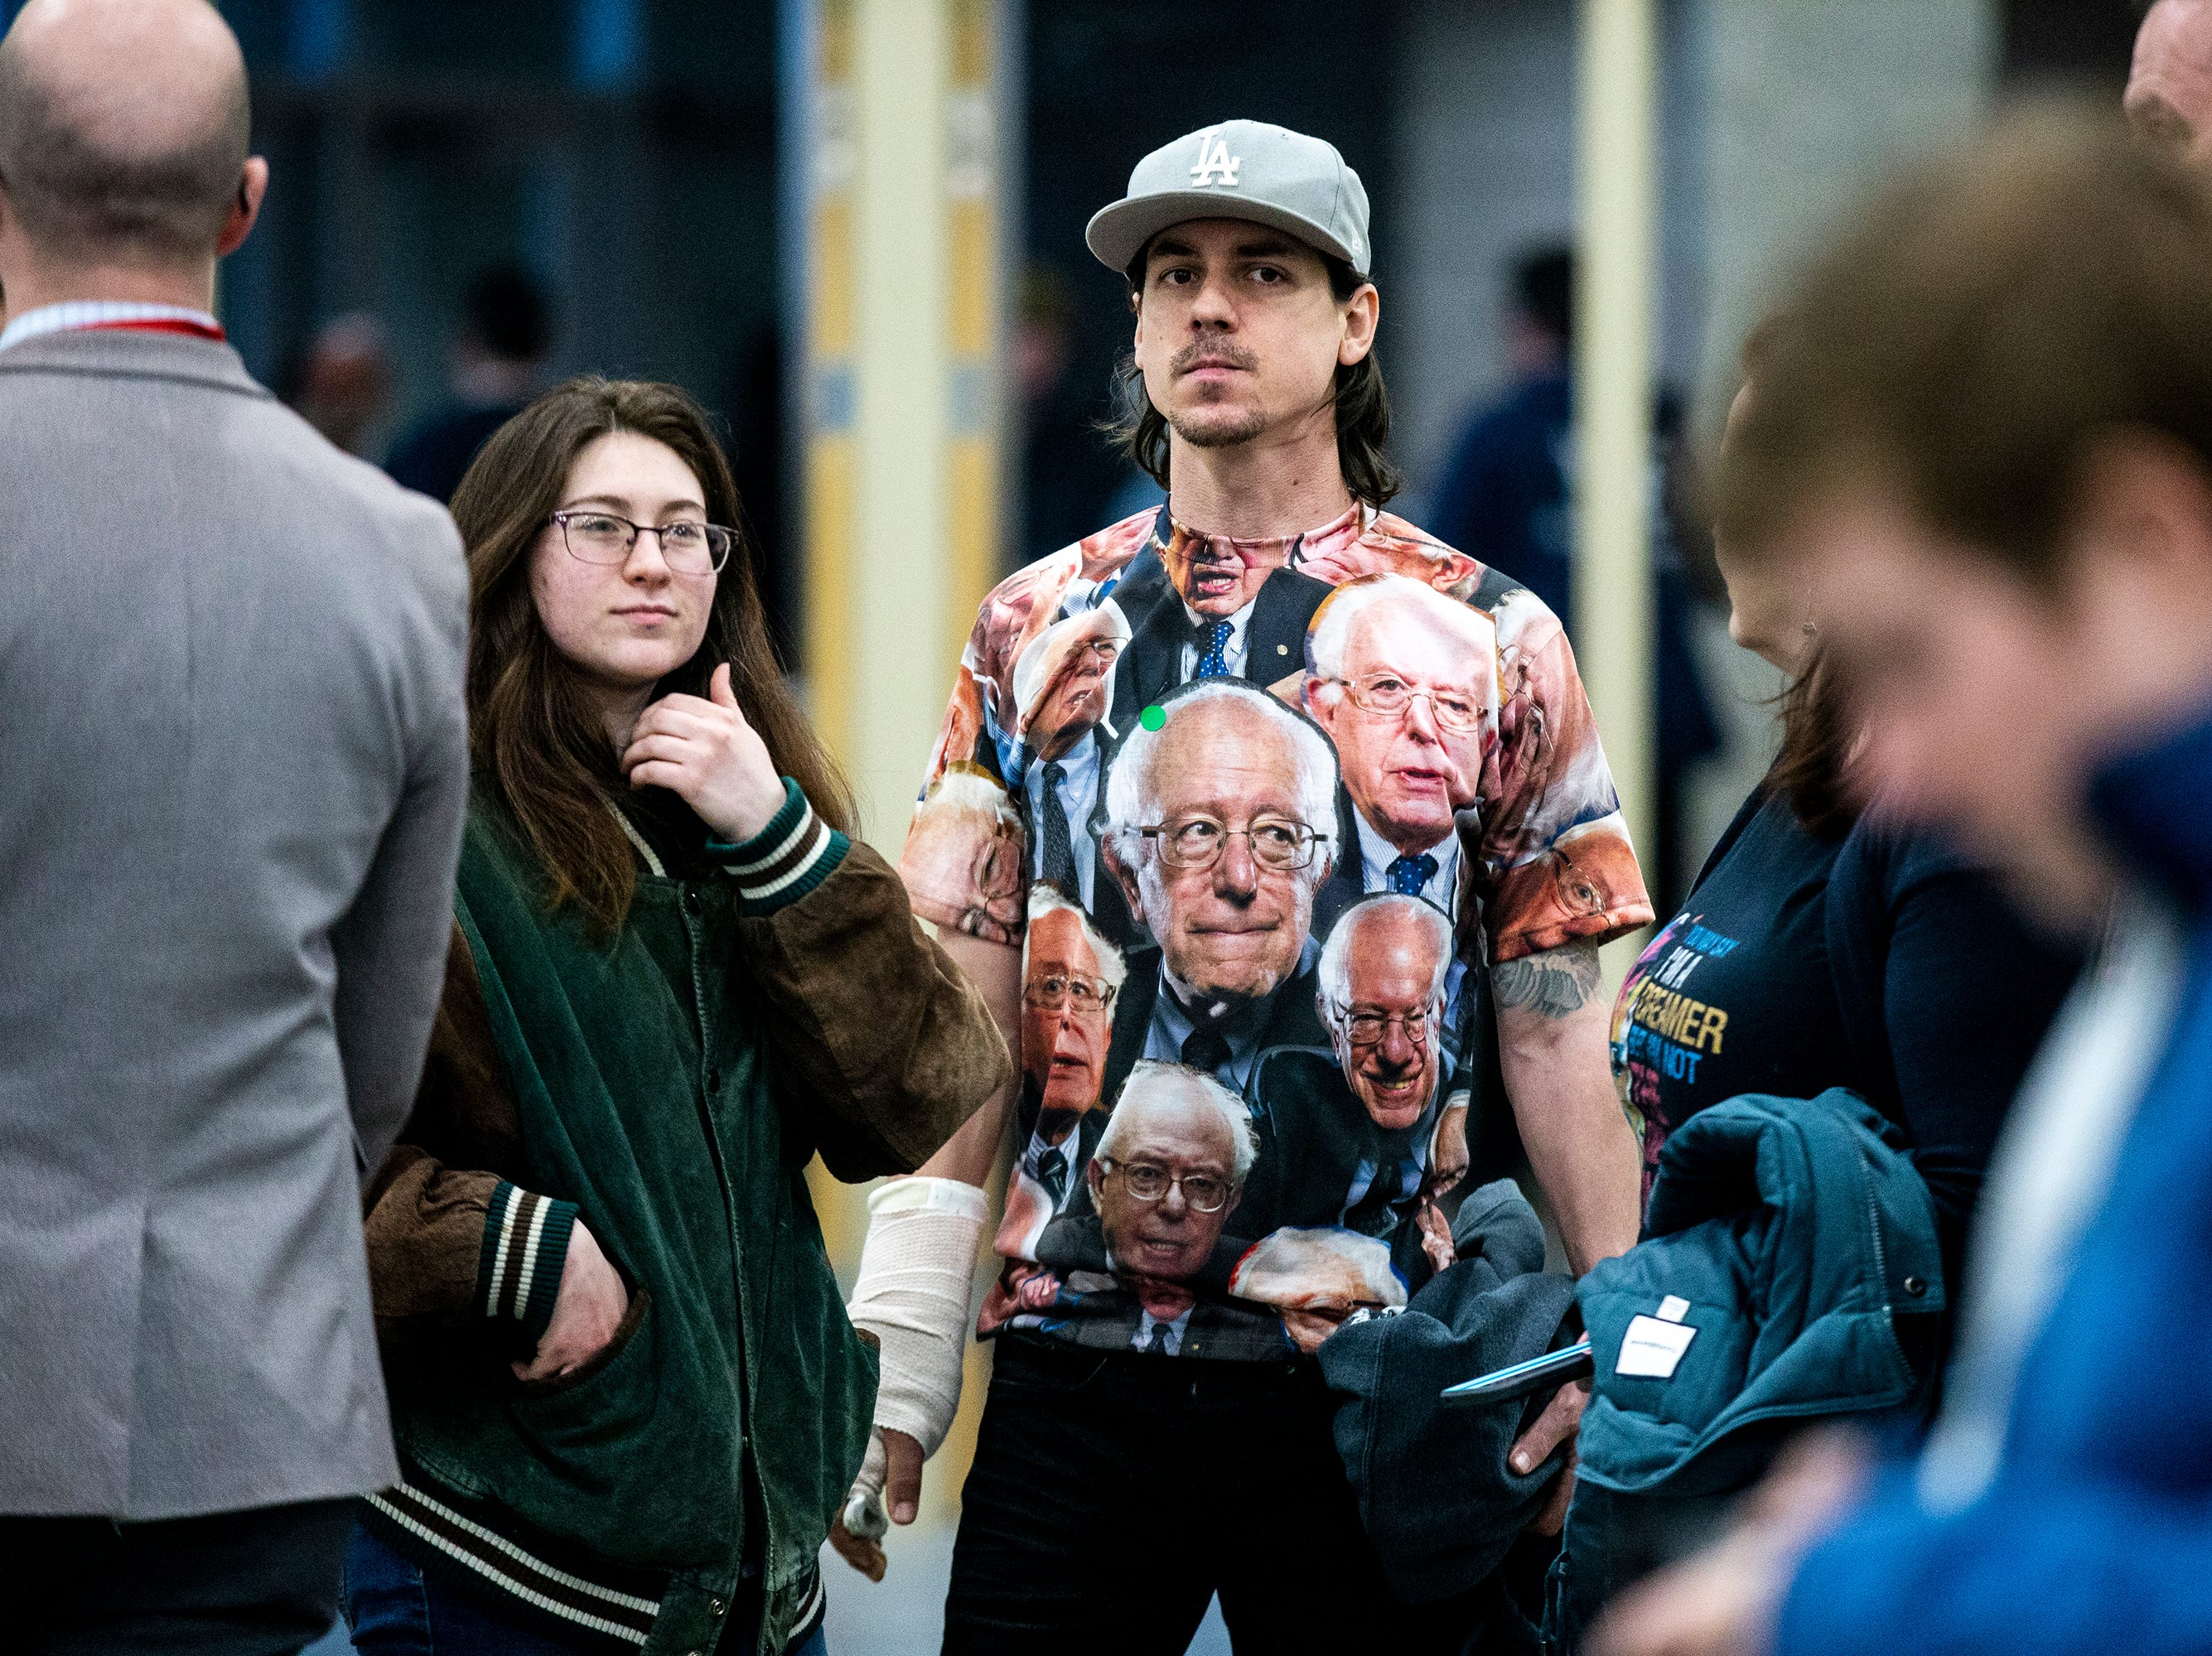 David Barba, 35 of Omaha, wears a shirt with Sen. Bernie Sanders, I-VT, face all over it to Sanders' first event in Iowa after announcing he'll run for president for the second time on Thursday, March 7, 2019, at the Mid-America Center in Council Bluffs.